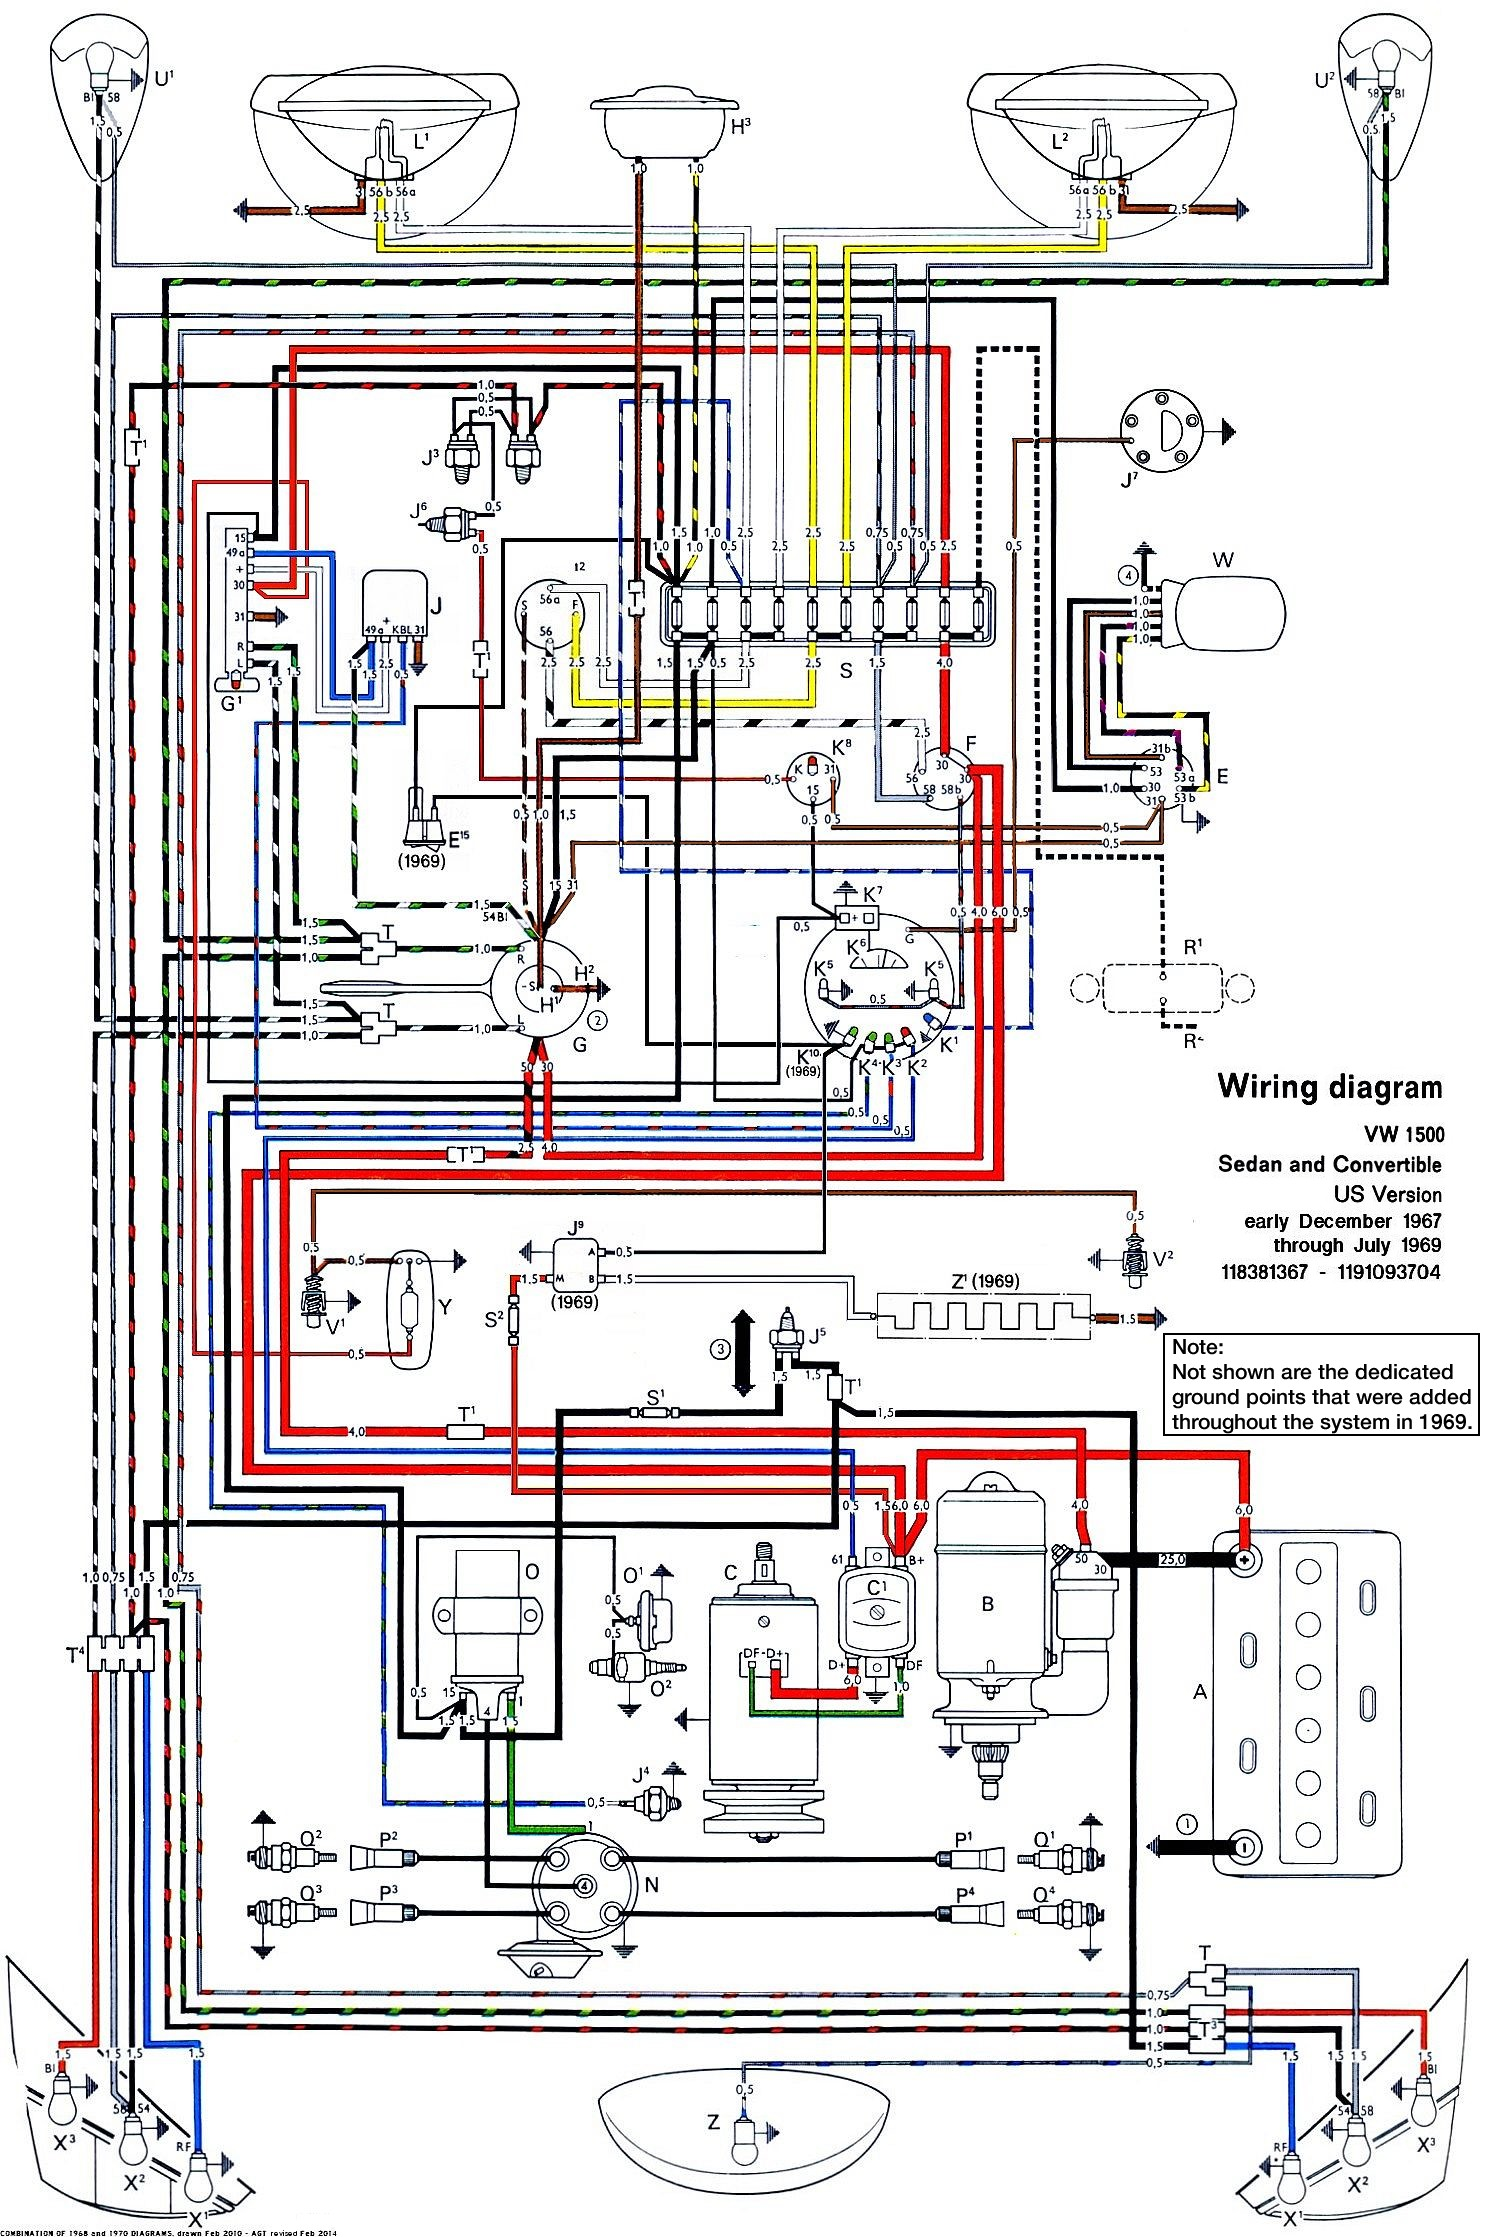 1969 Vw Bug Wiring | Wiring Diagram Air Cooled Vw Alternator Wiring on